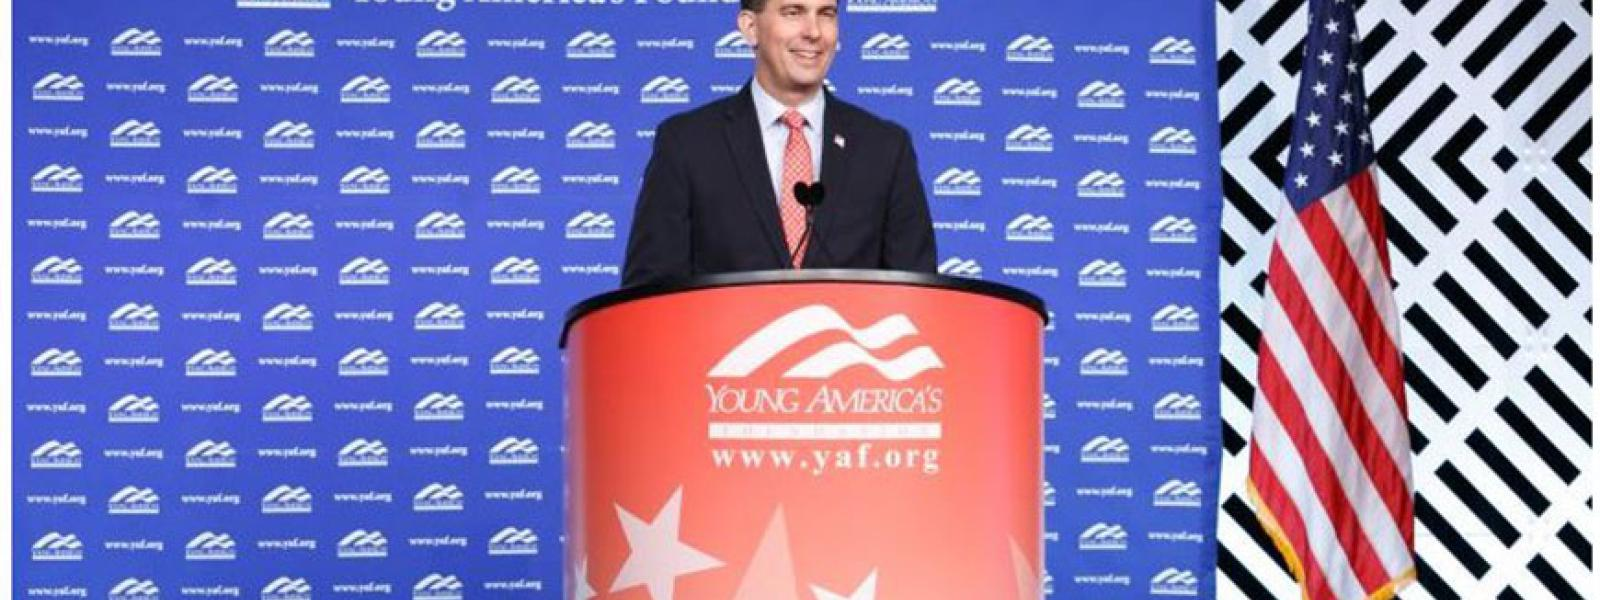 Former Wisconsin Governor Scott Walker will deliver the commencement address to the CIU Class of 2021. (Source: Young America's Foundation)